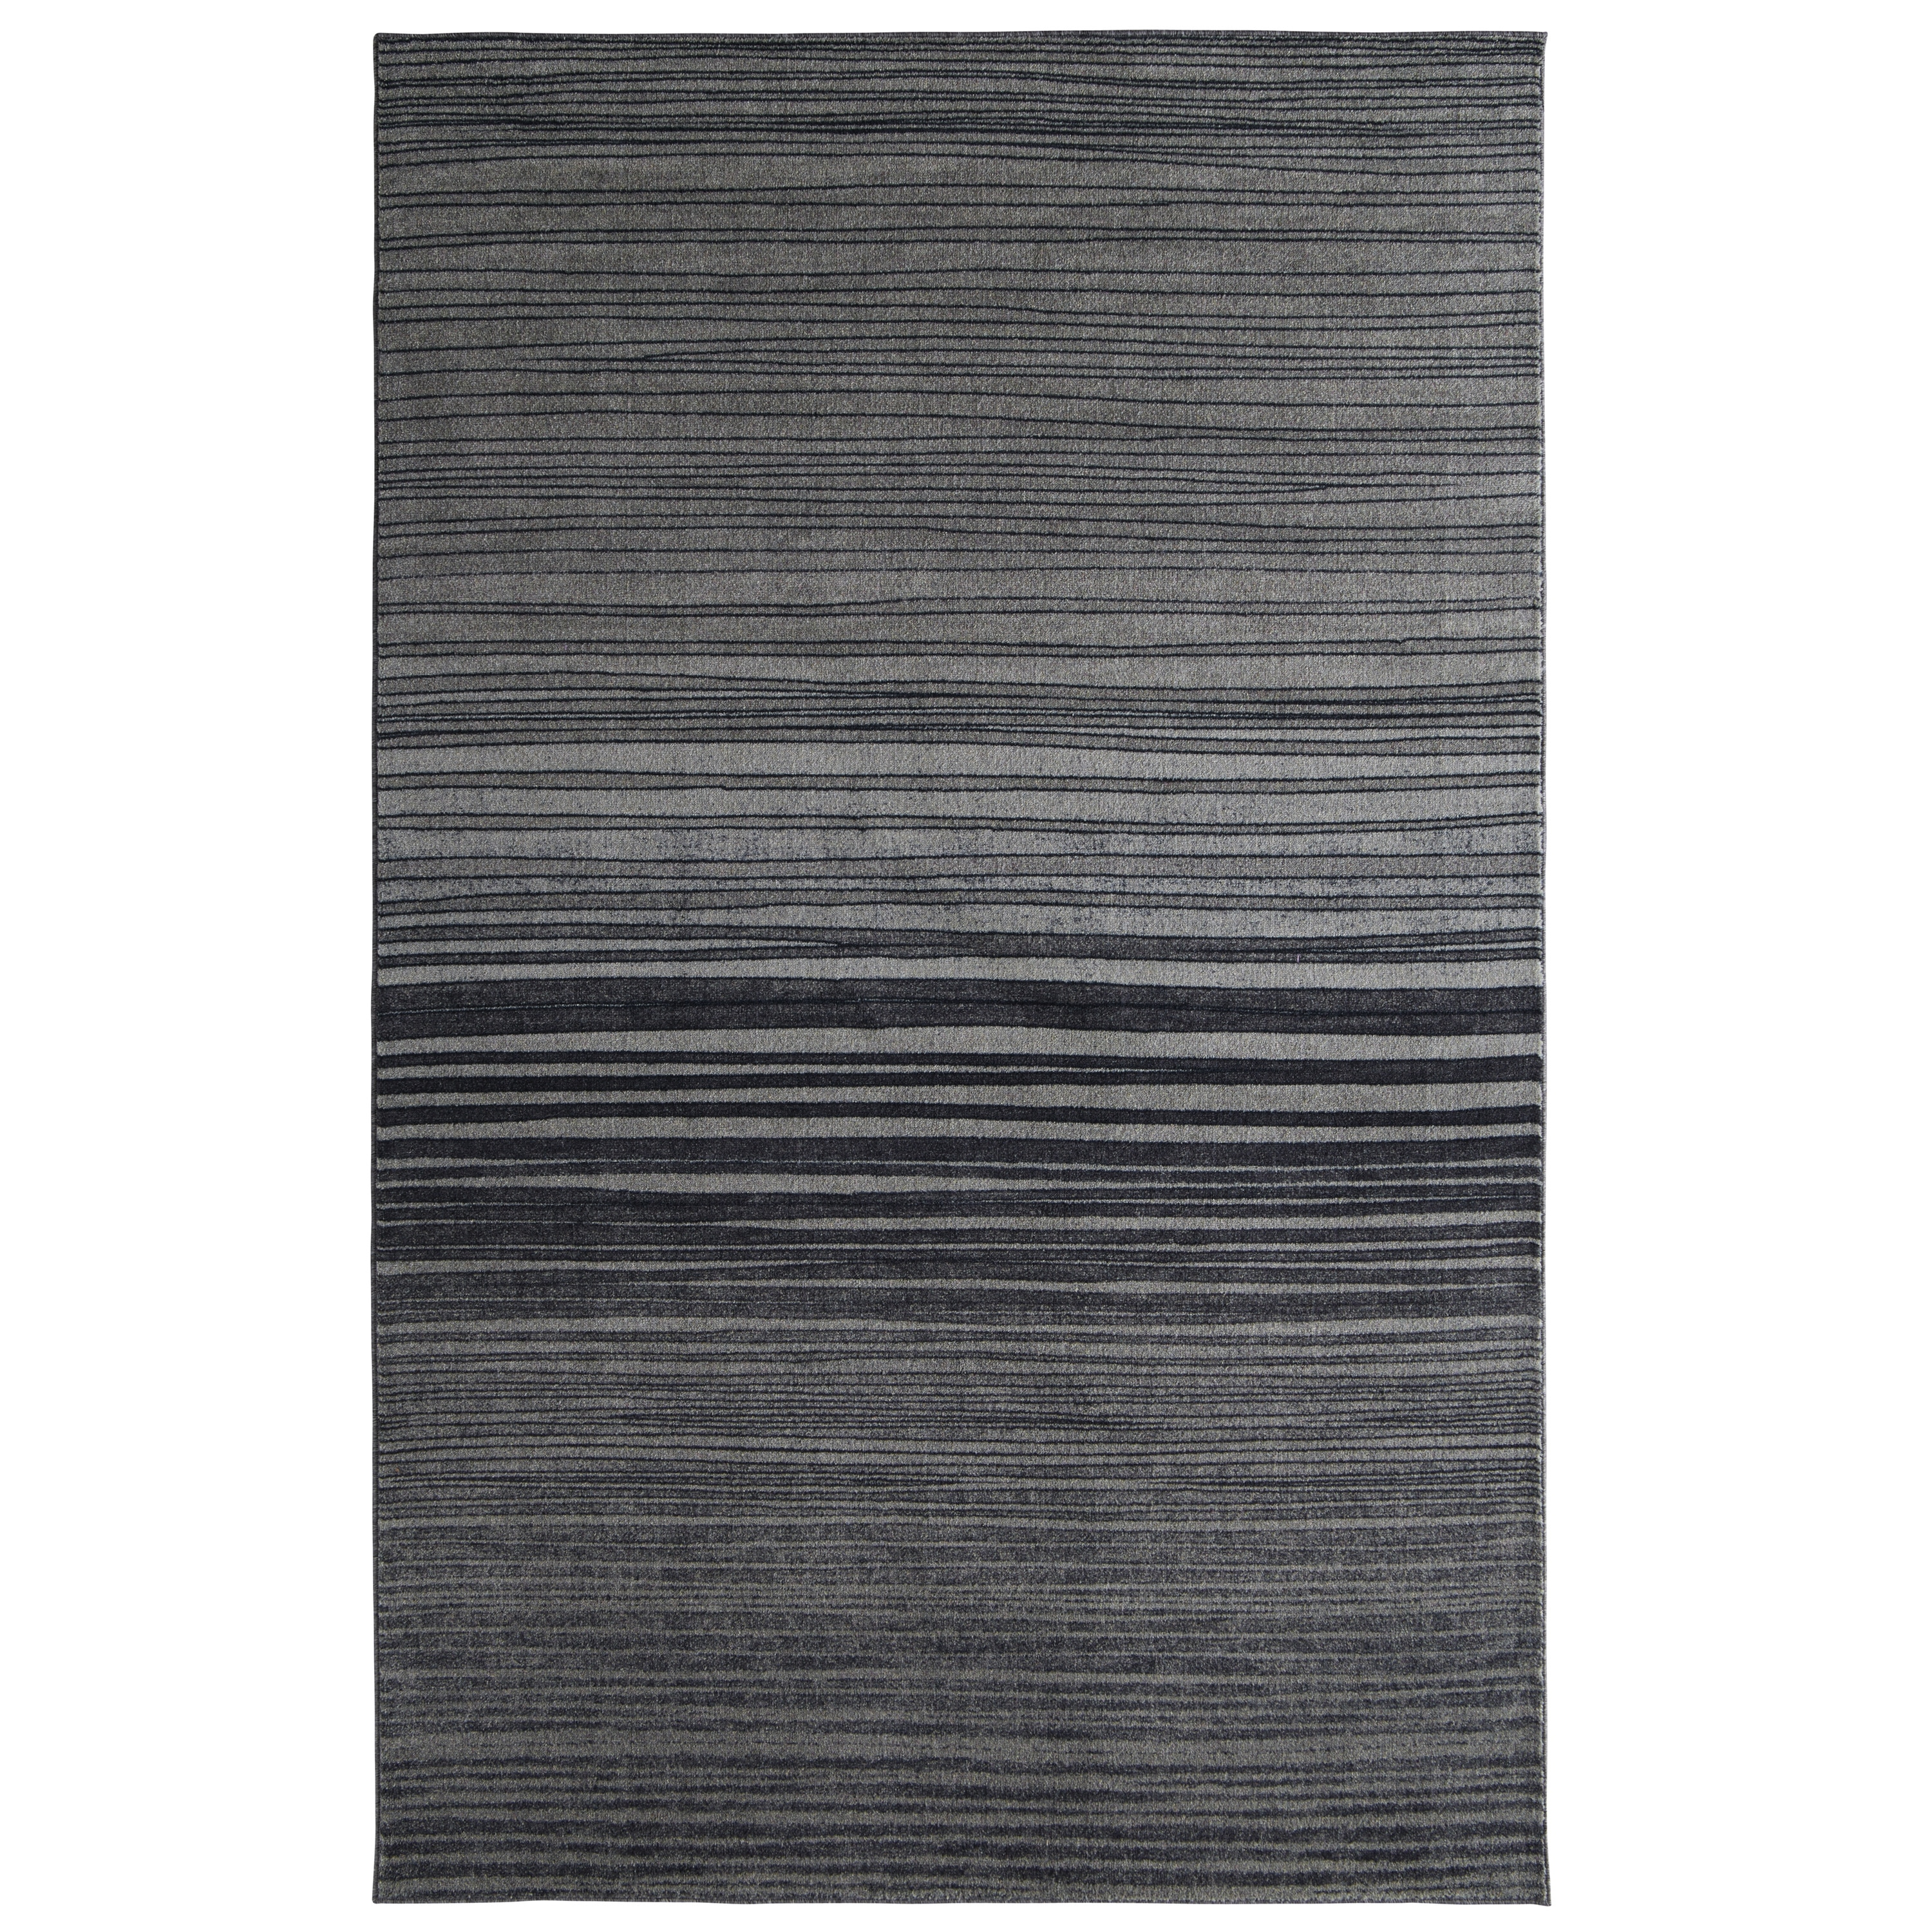 Stripe Mohawk Home Rugs Area For Less